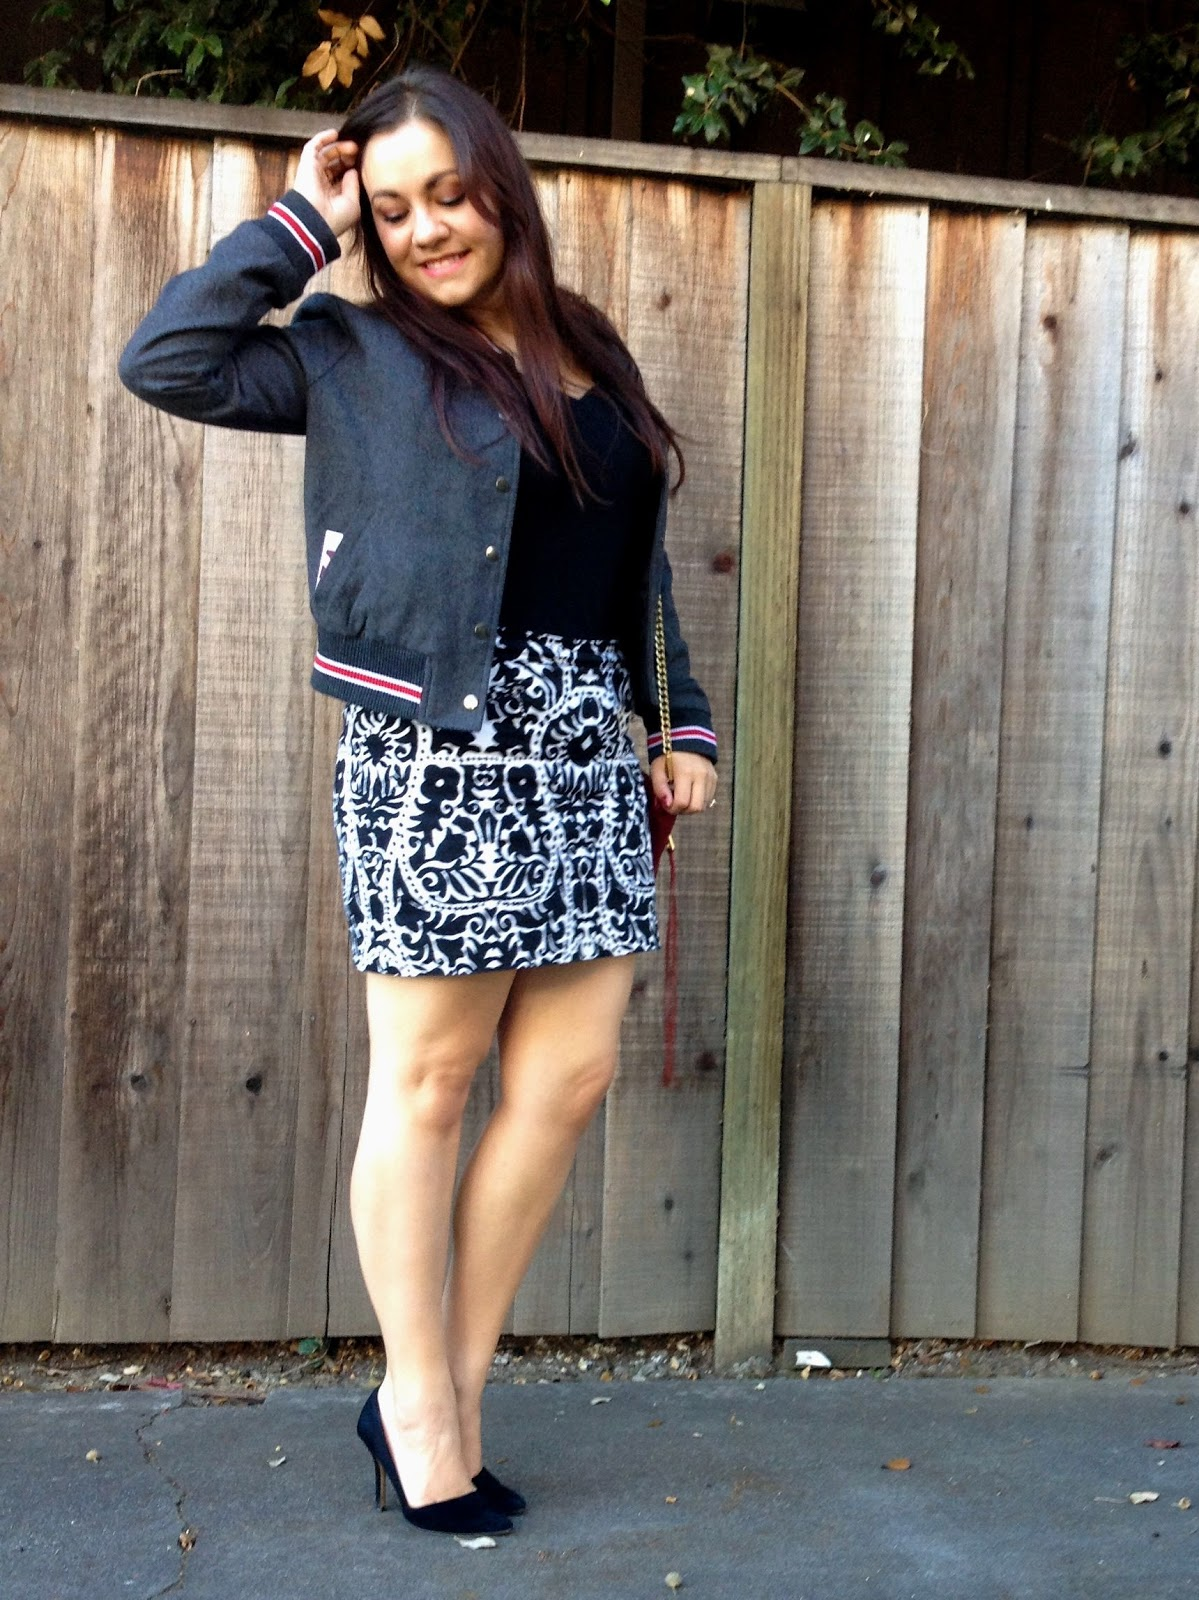 It's because I think too much: Varsity